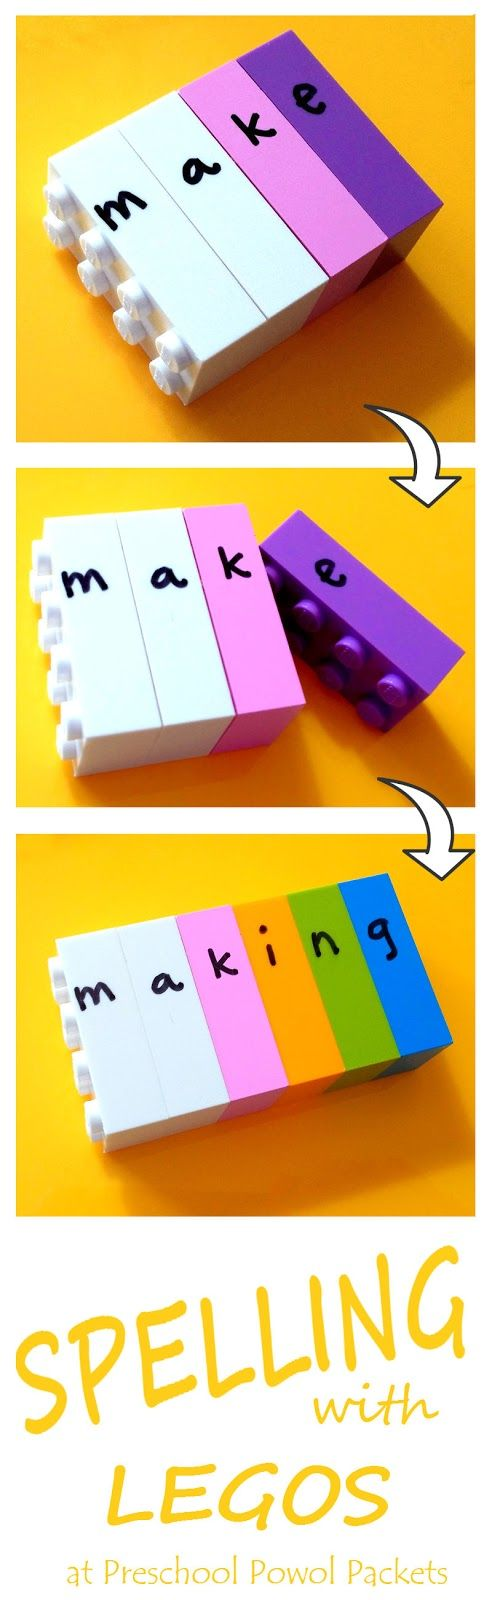 Spelling With LEGOS! Perfect for advanced preschoolers, kindergarten, and elementary aged students! http://www.sunshinegroups.co.uk/